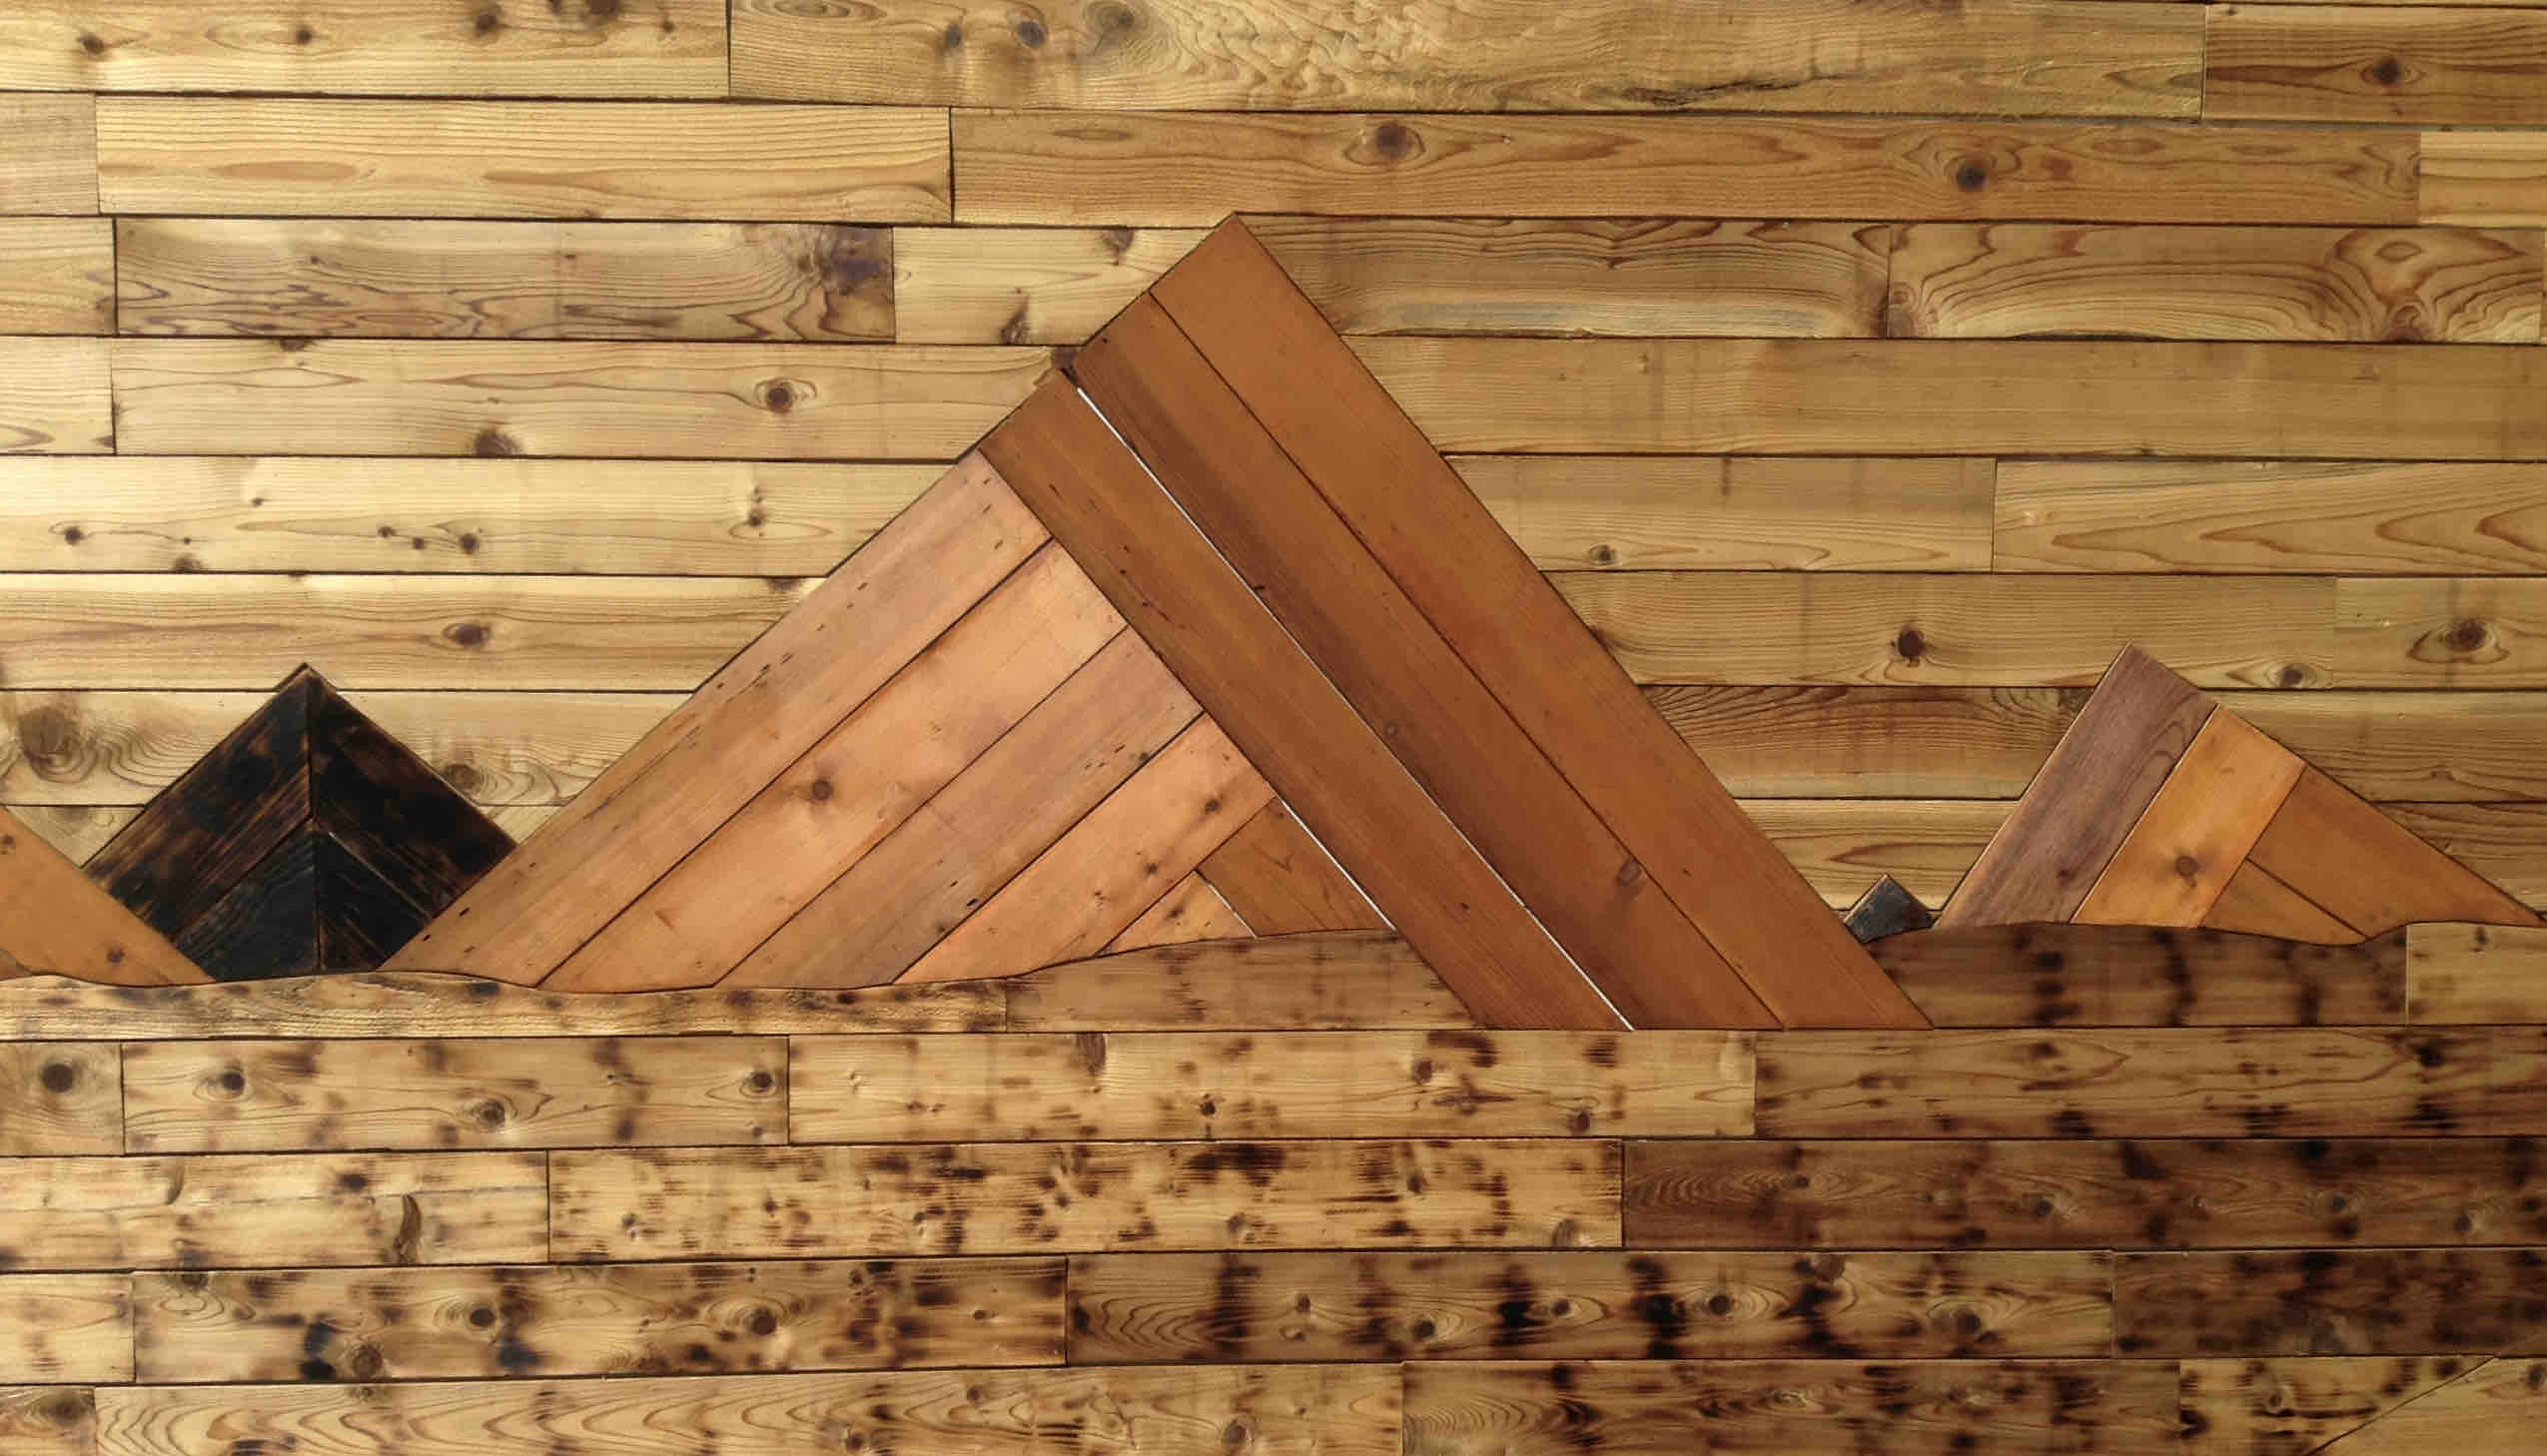 Wood artwork adorns the walls at ForeLand Beer in McMinnville, Oregon. (photo by Jessica Wilmes)JPG